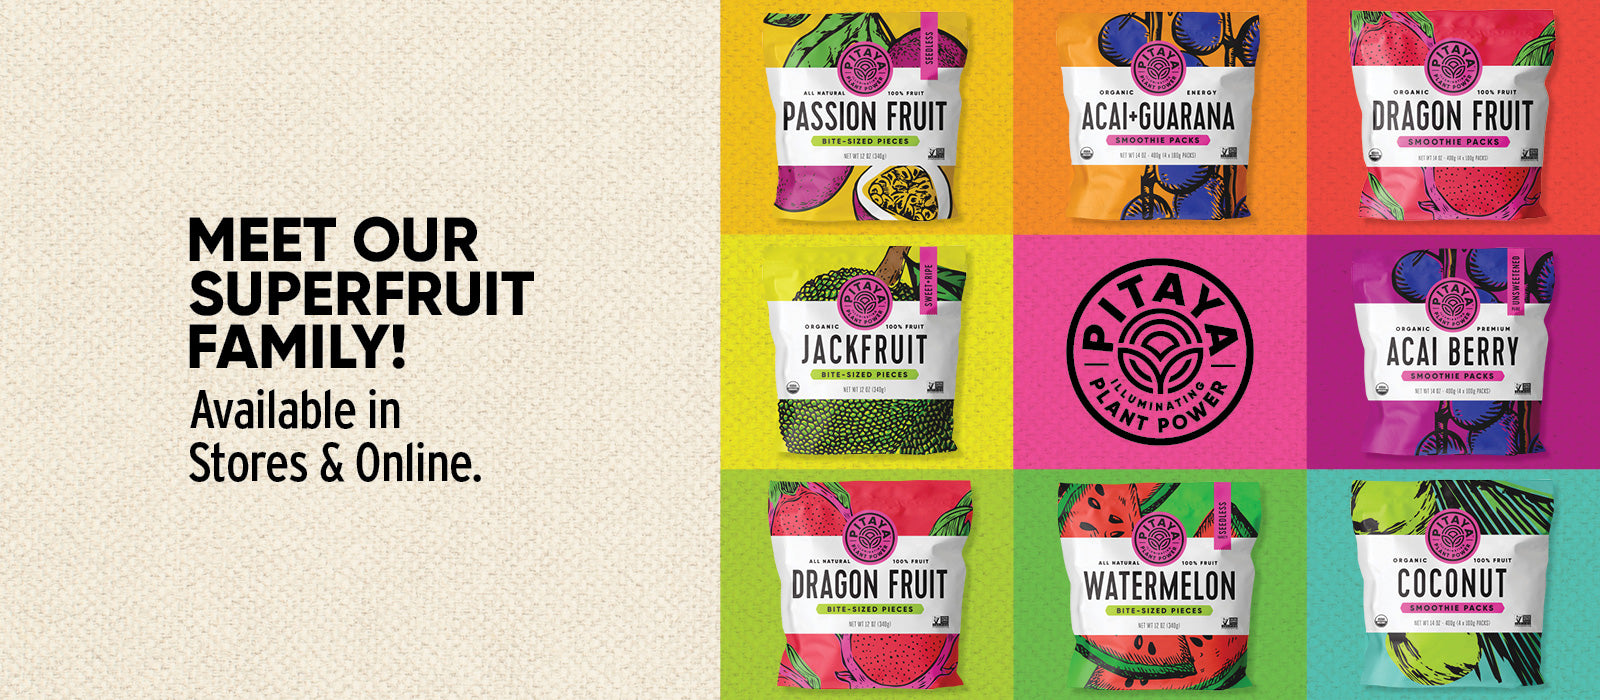 Meet Our Super-Fruit Family Pitaya Foods